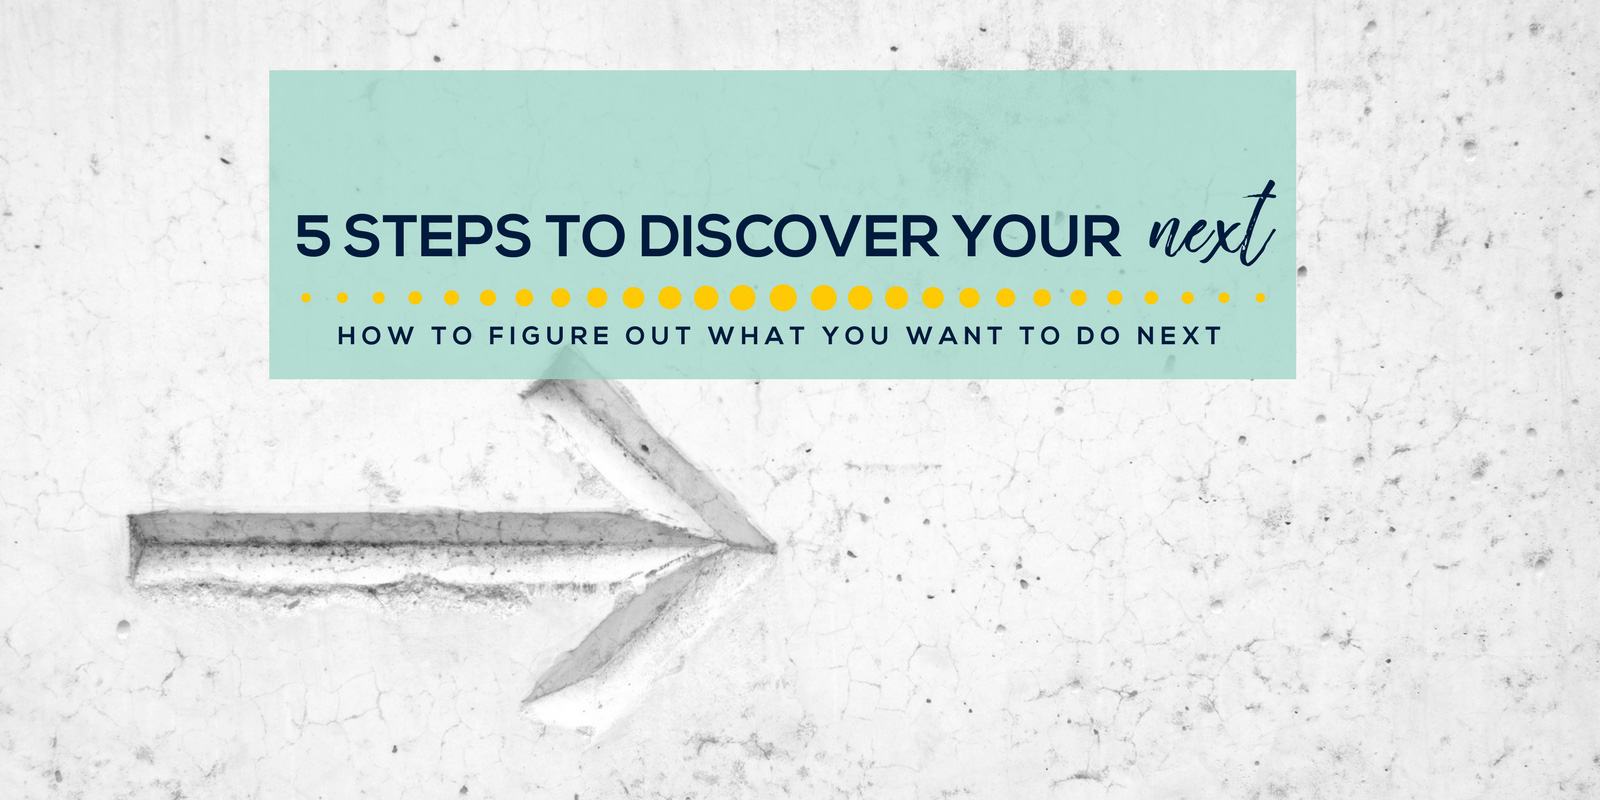 5-Steps-to-Discover-your-Next-Title-Image.jpg